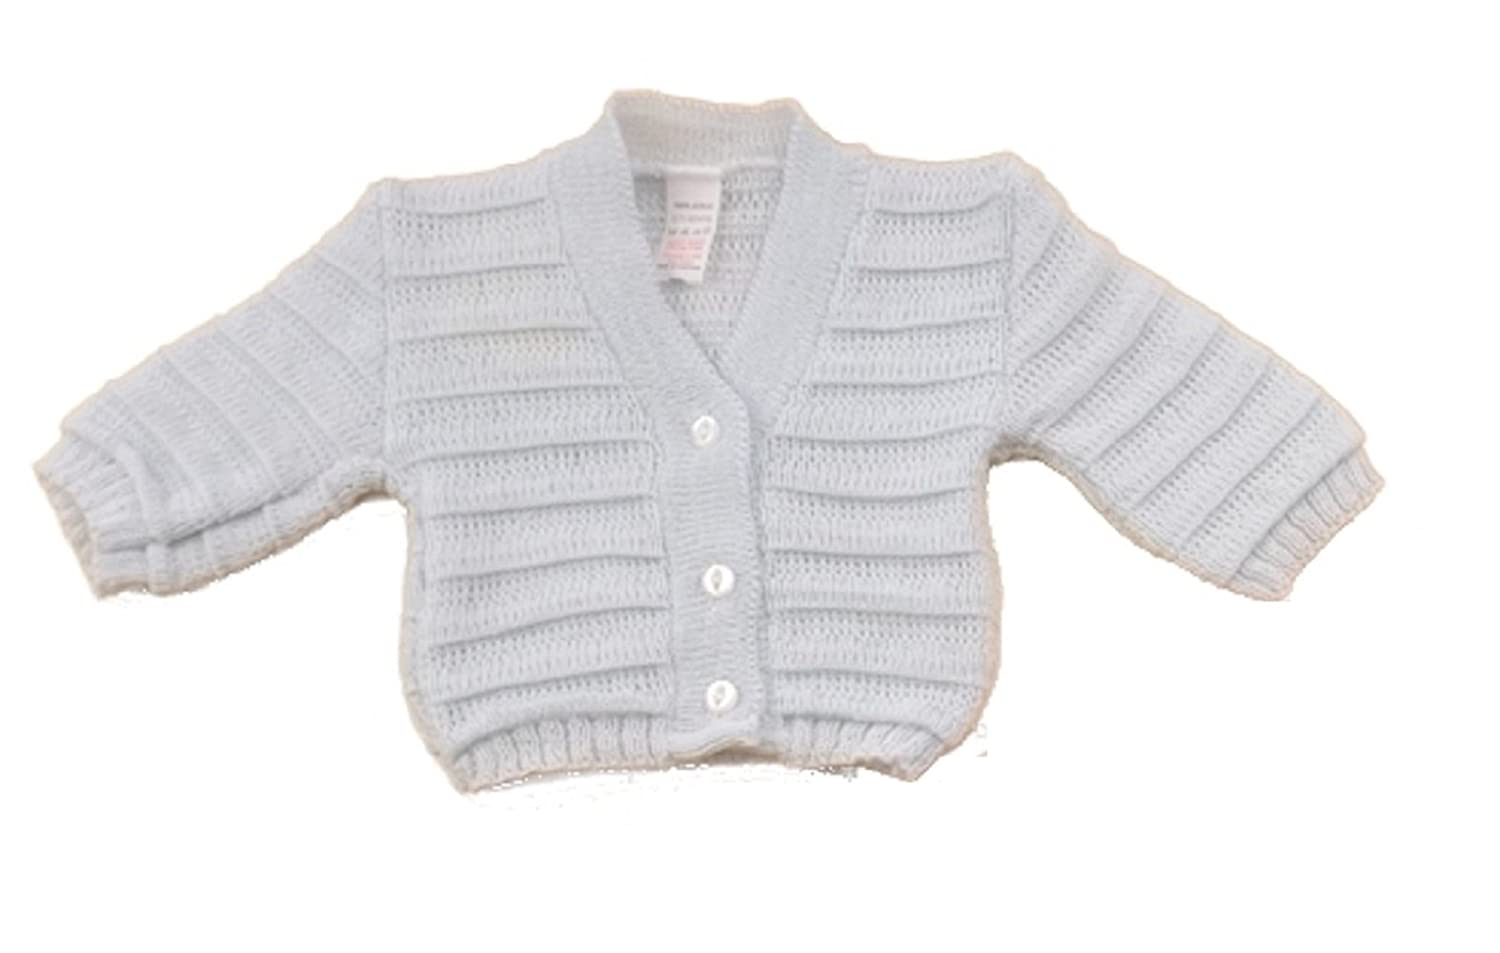 Baby Soft Knitted Cardigan All Seasons B066 White Pink Sky Blue B066w